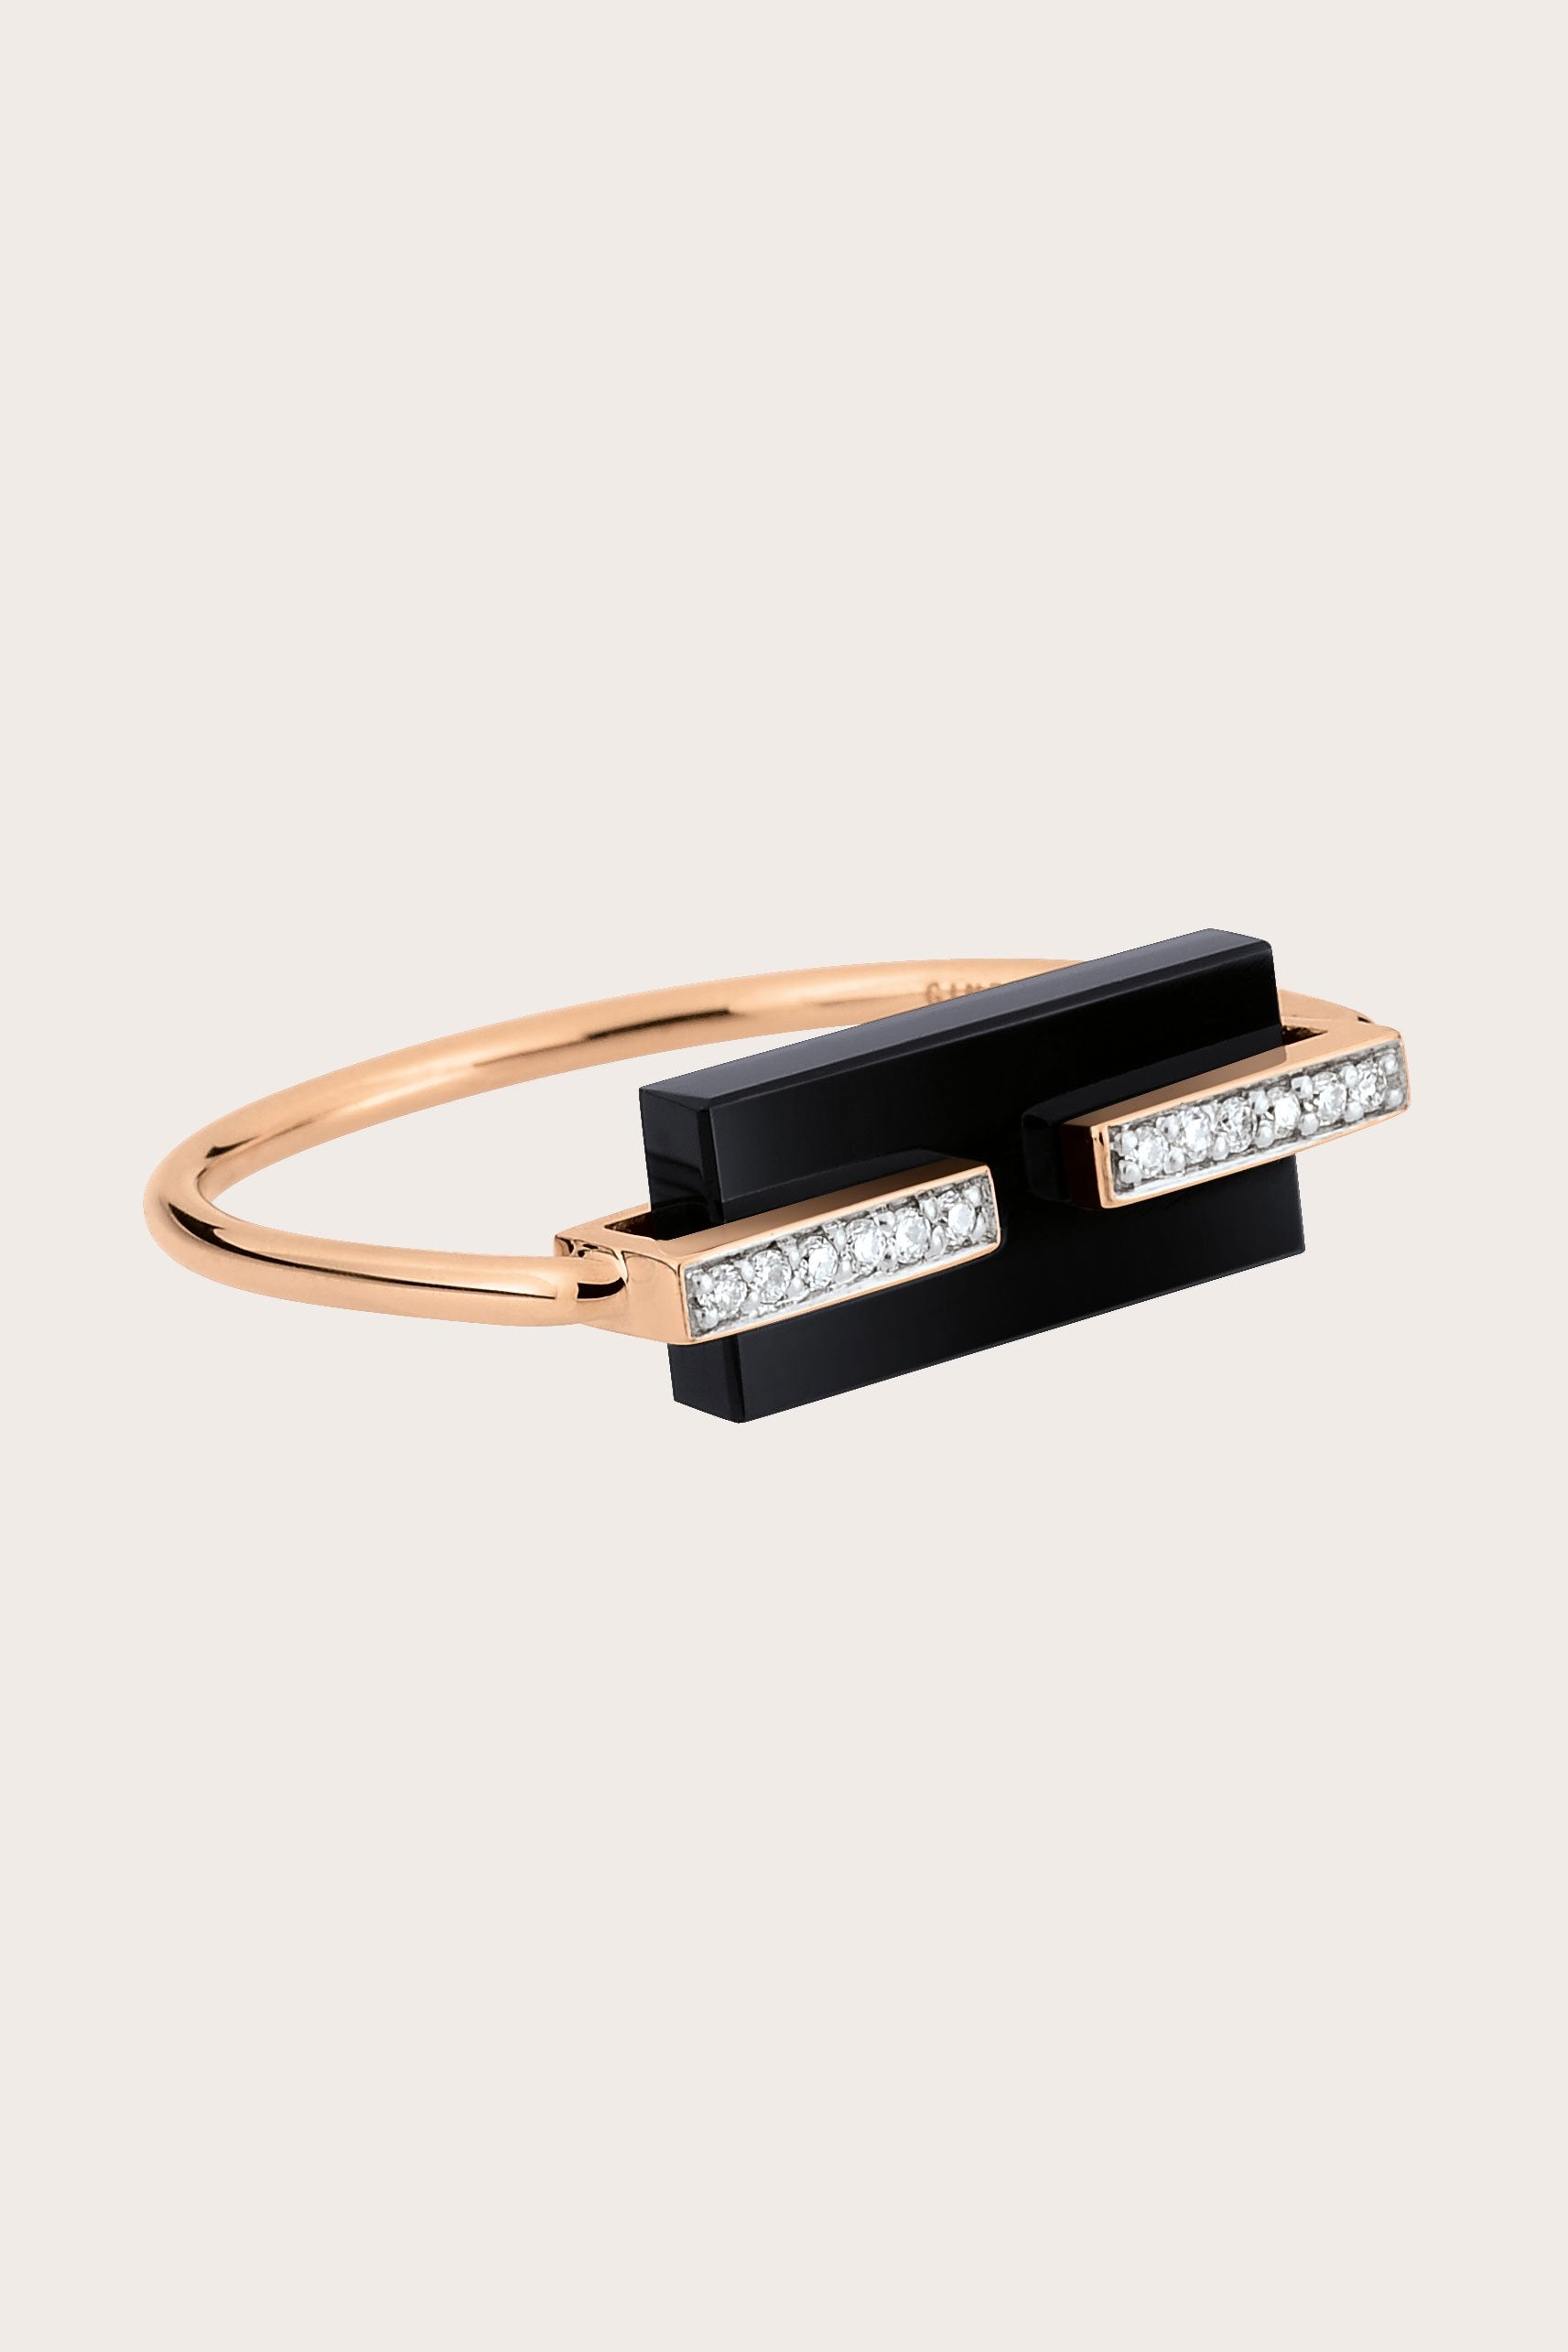 Ginette NY - Art Deco Ring, Rose Gold with Onyx & Black Diamond